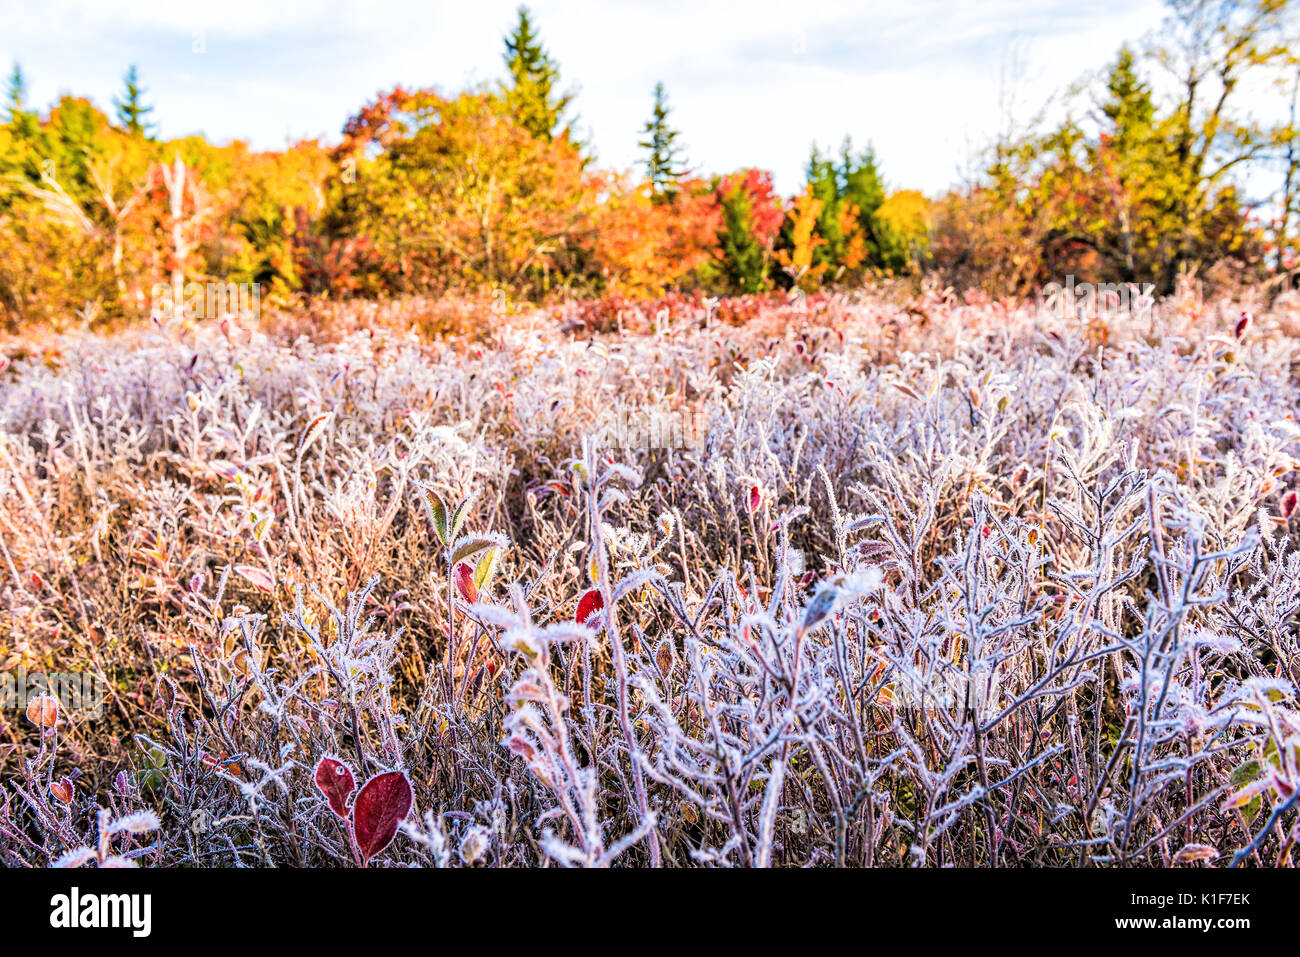 Frost iced trail of red blueberry bushes illuminated by morning sunlight at Dolly Sods, West Virginia with forest - Stock Image